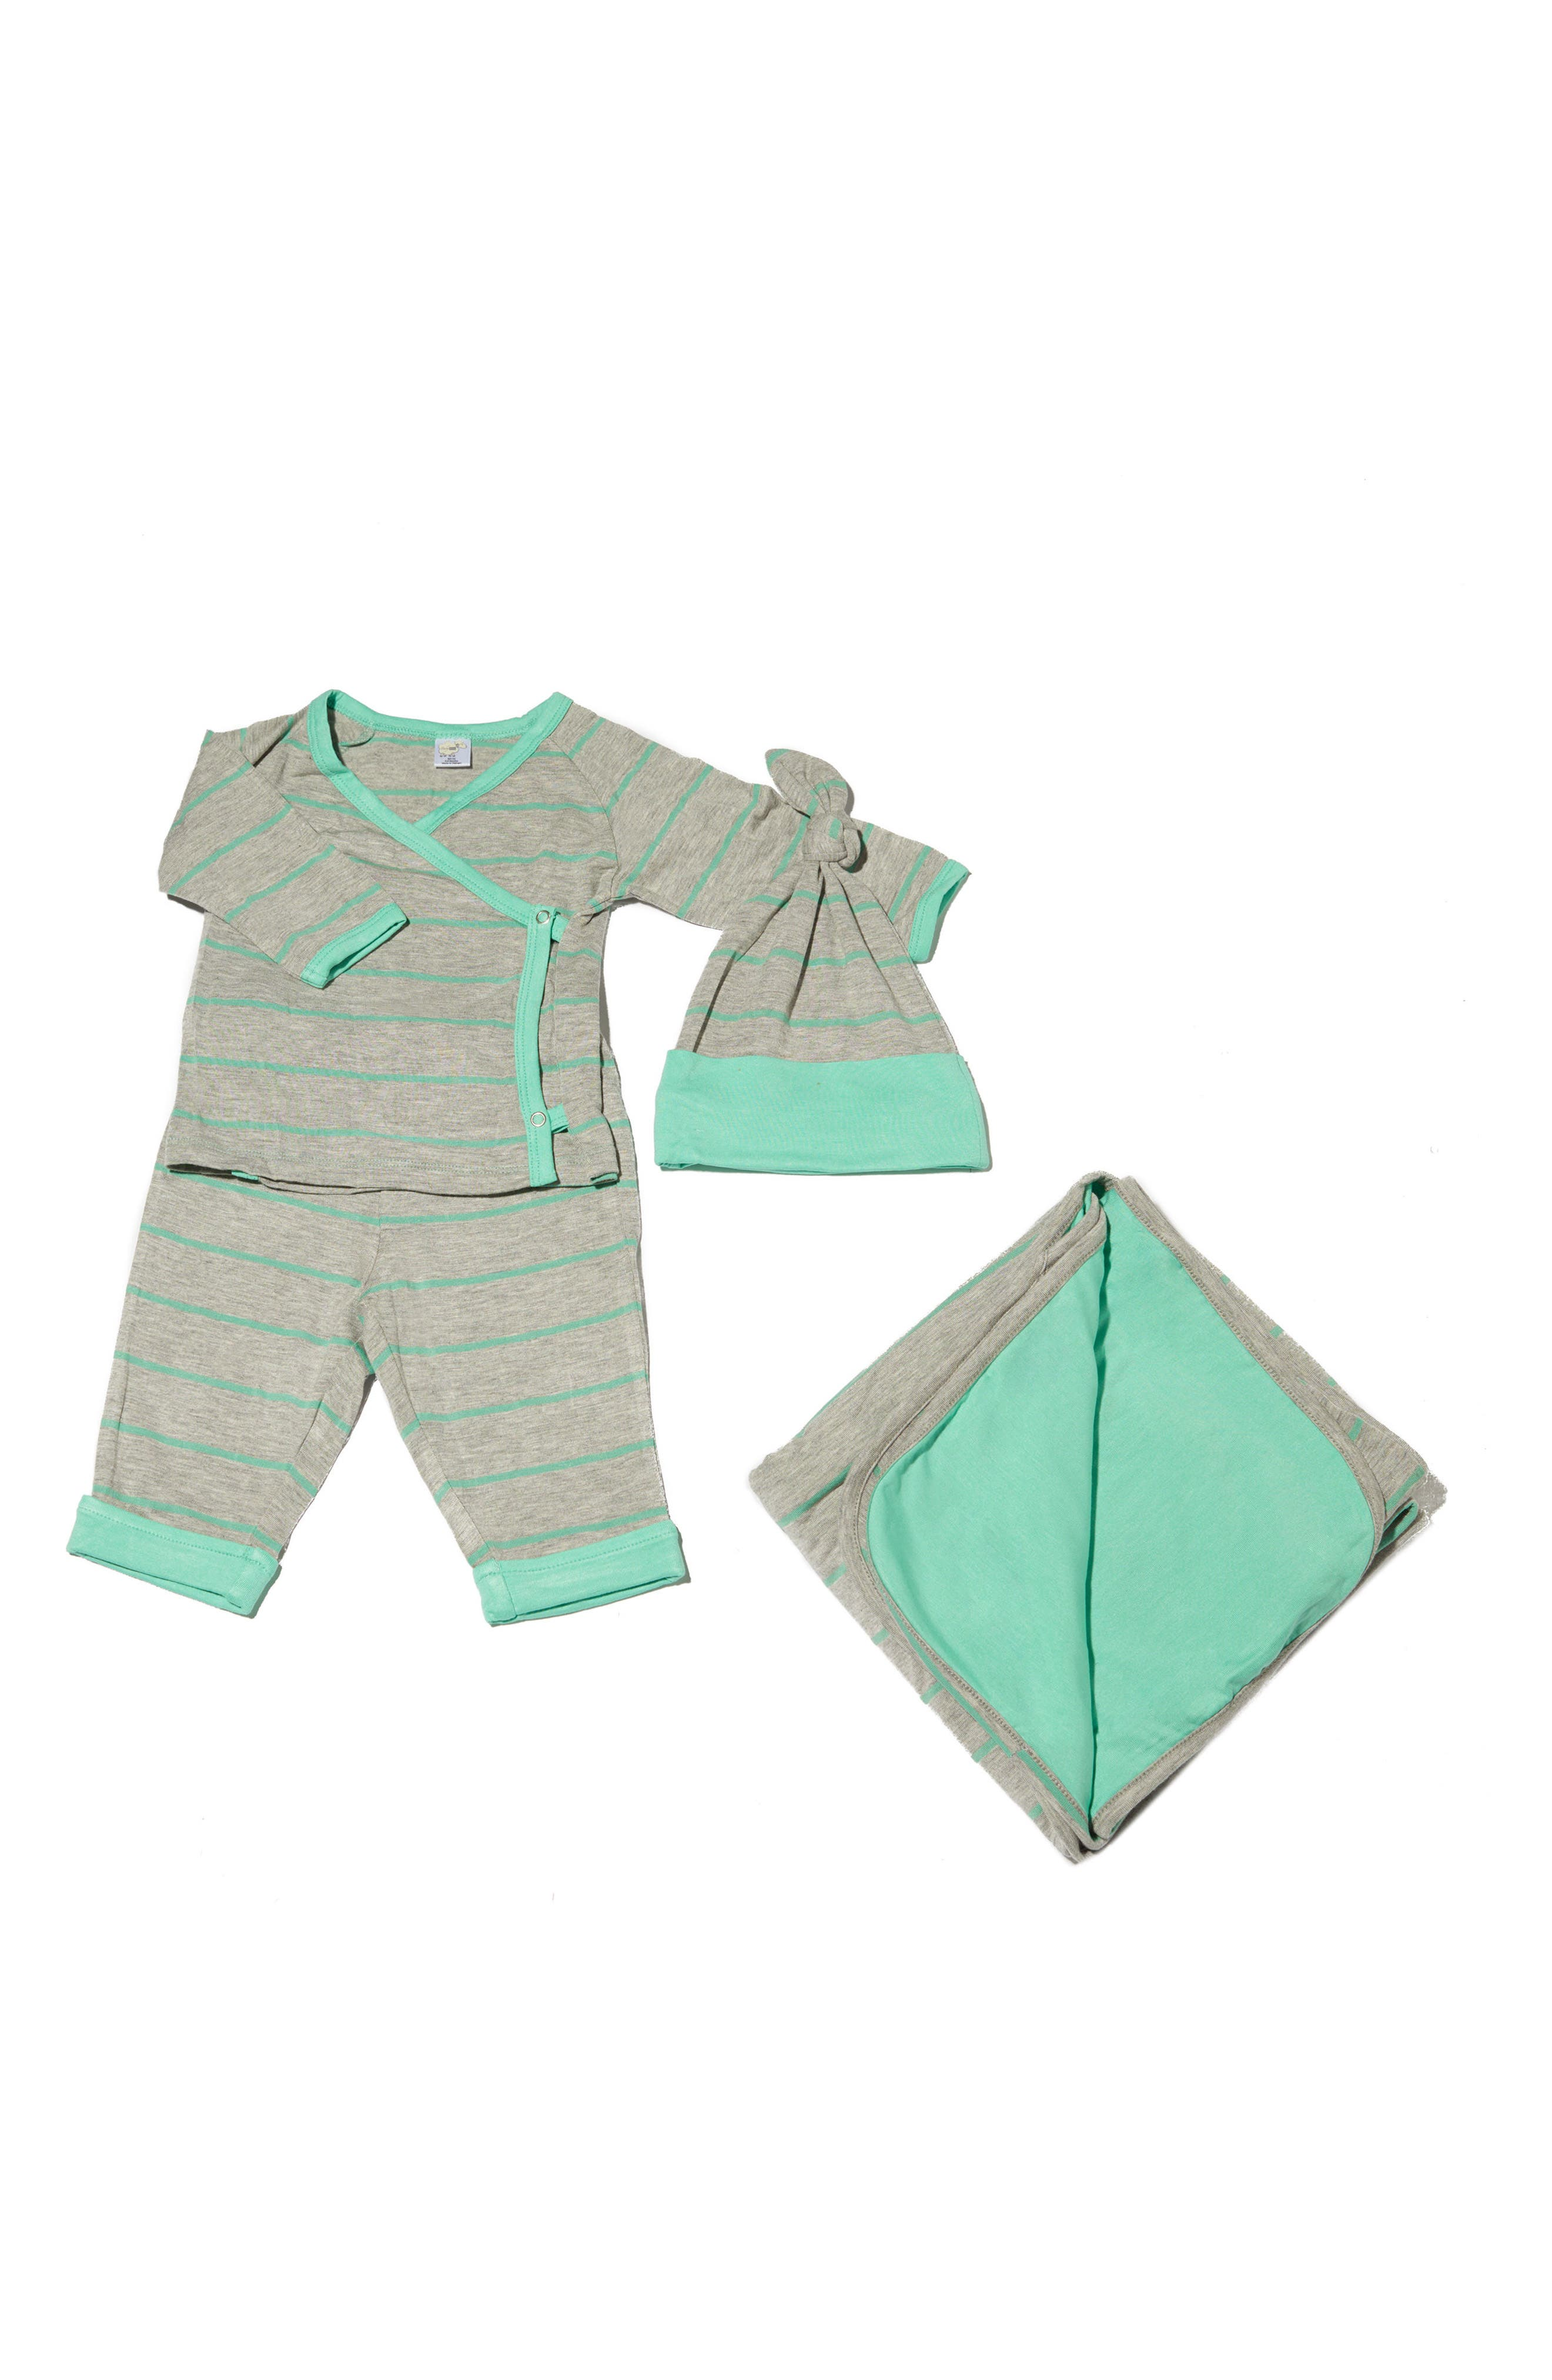 Alternate Image 1 Selected - Baby Grey T-Shirt, Pants, Hat & Blanket Set (Baby Boys)